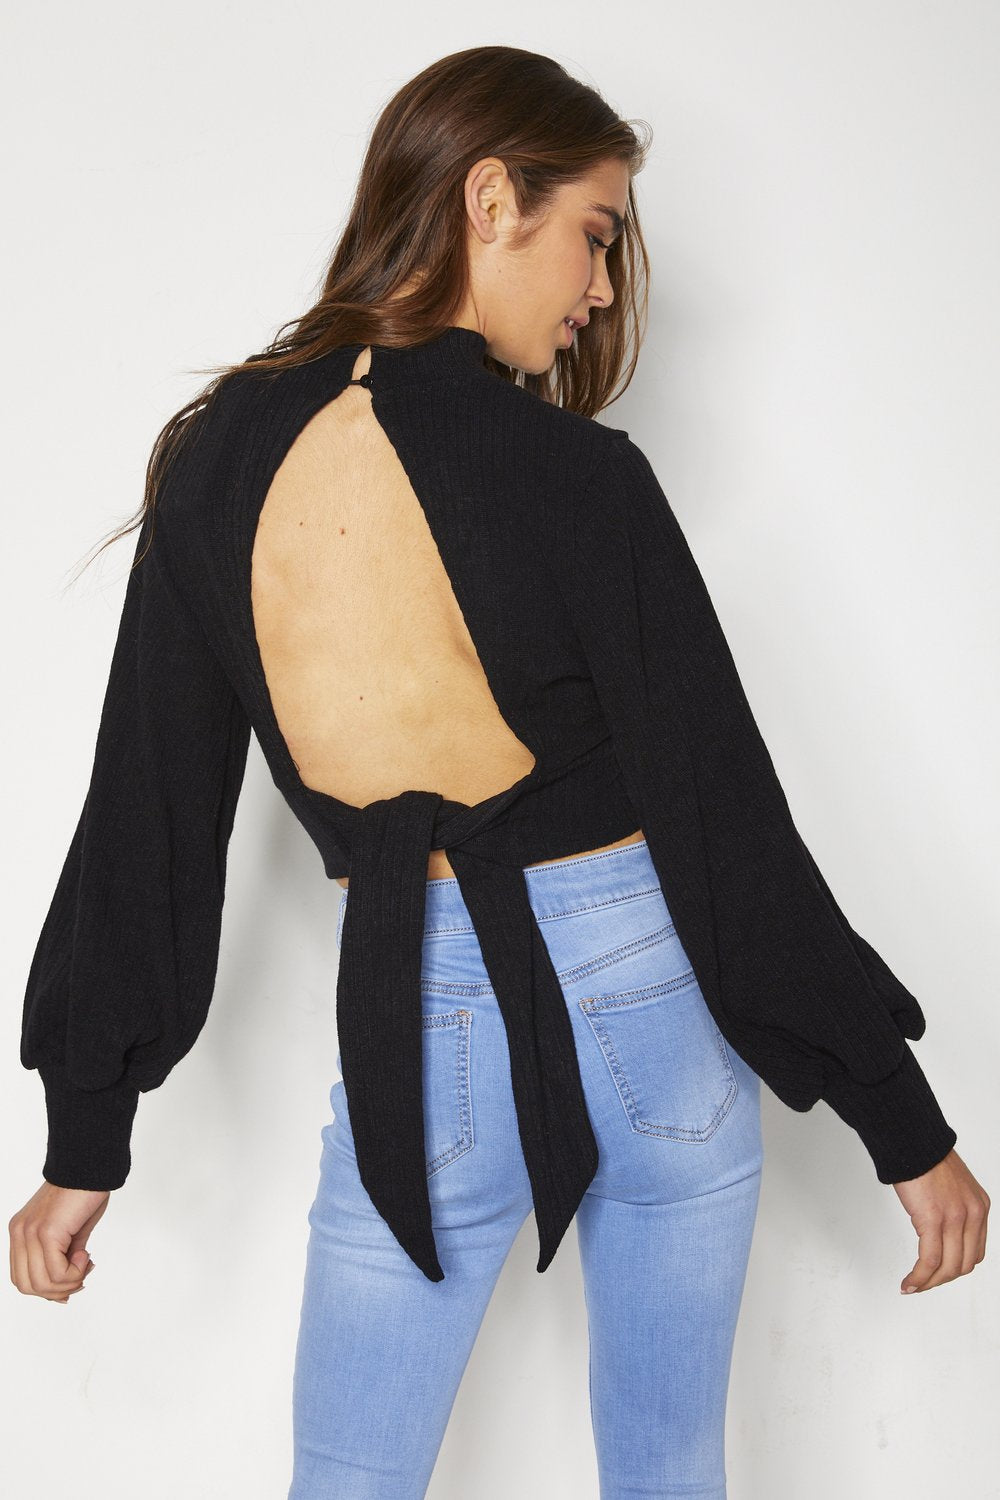 Daphne Knit Top - Black